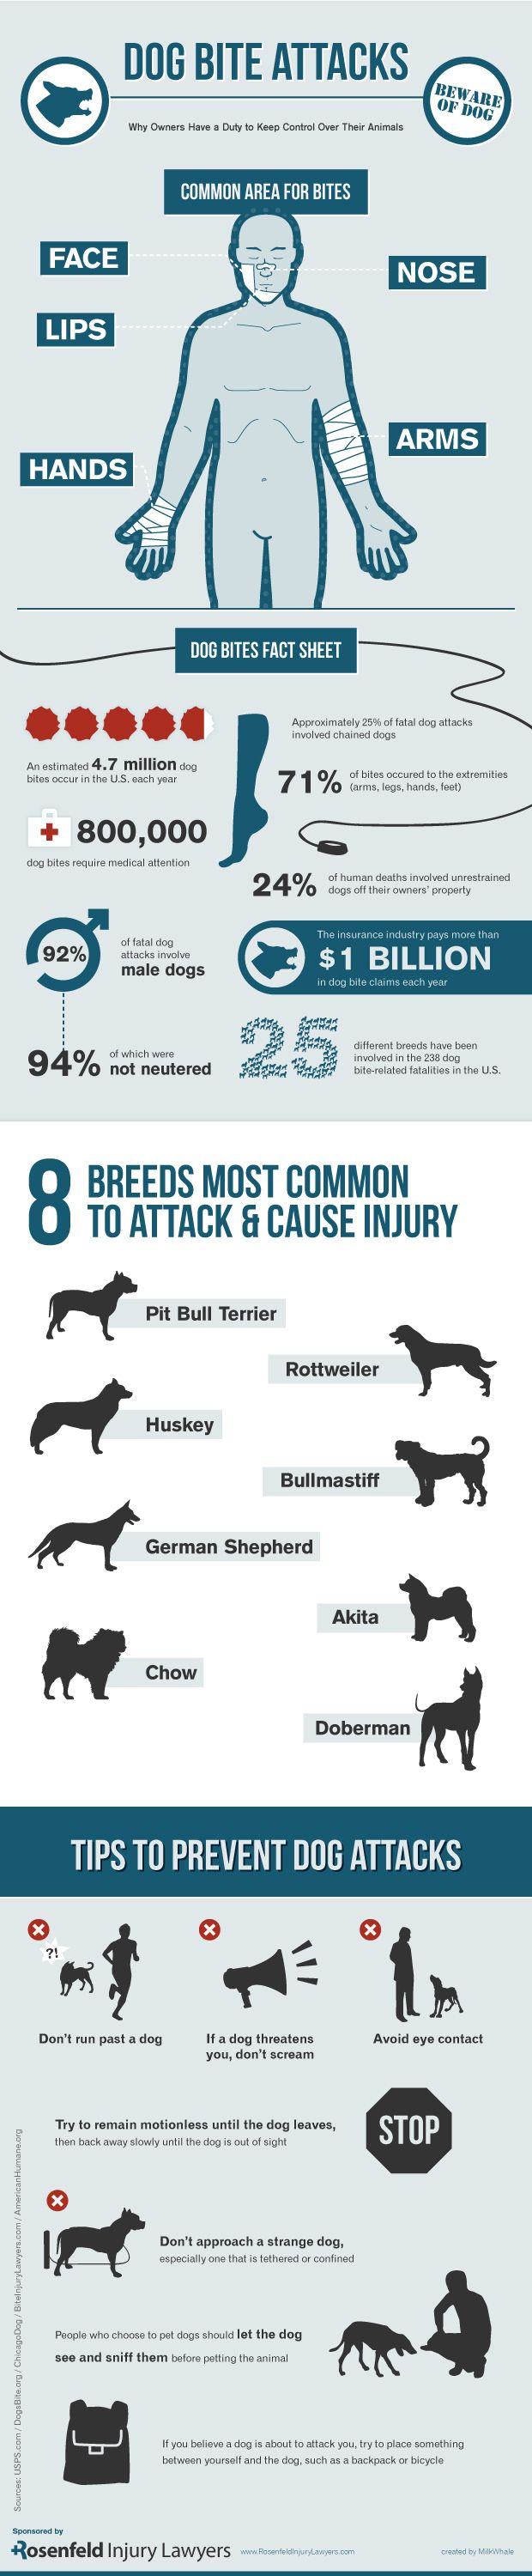 Dog bites pose a serious risk of injury to many people.  This infographic shows the most common areas of the body injured in dog bite attacks, most common breeds to attack and tips for preventing dog attacks.